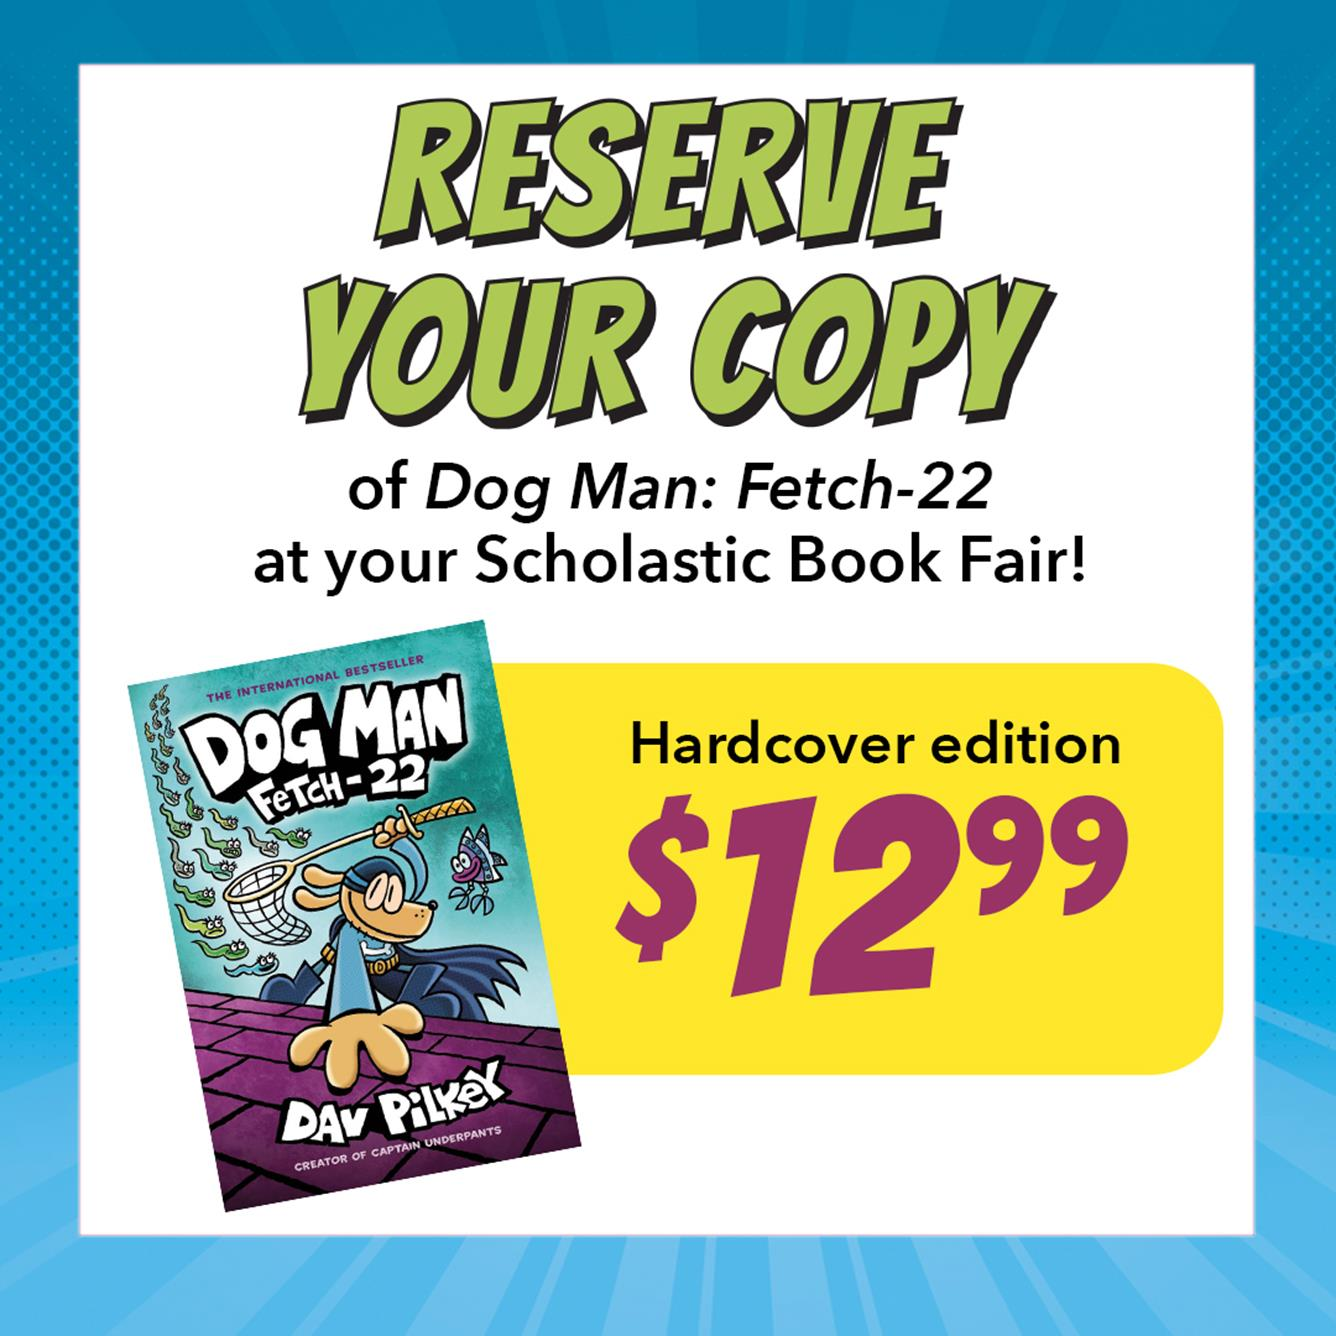 Reserve your copy of Dogman Fetch-22